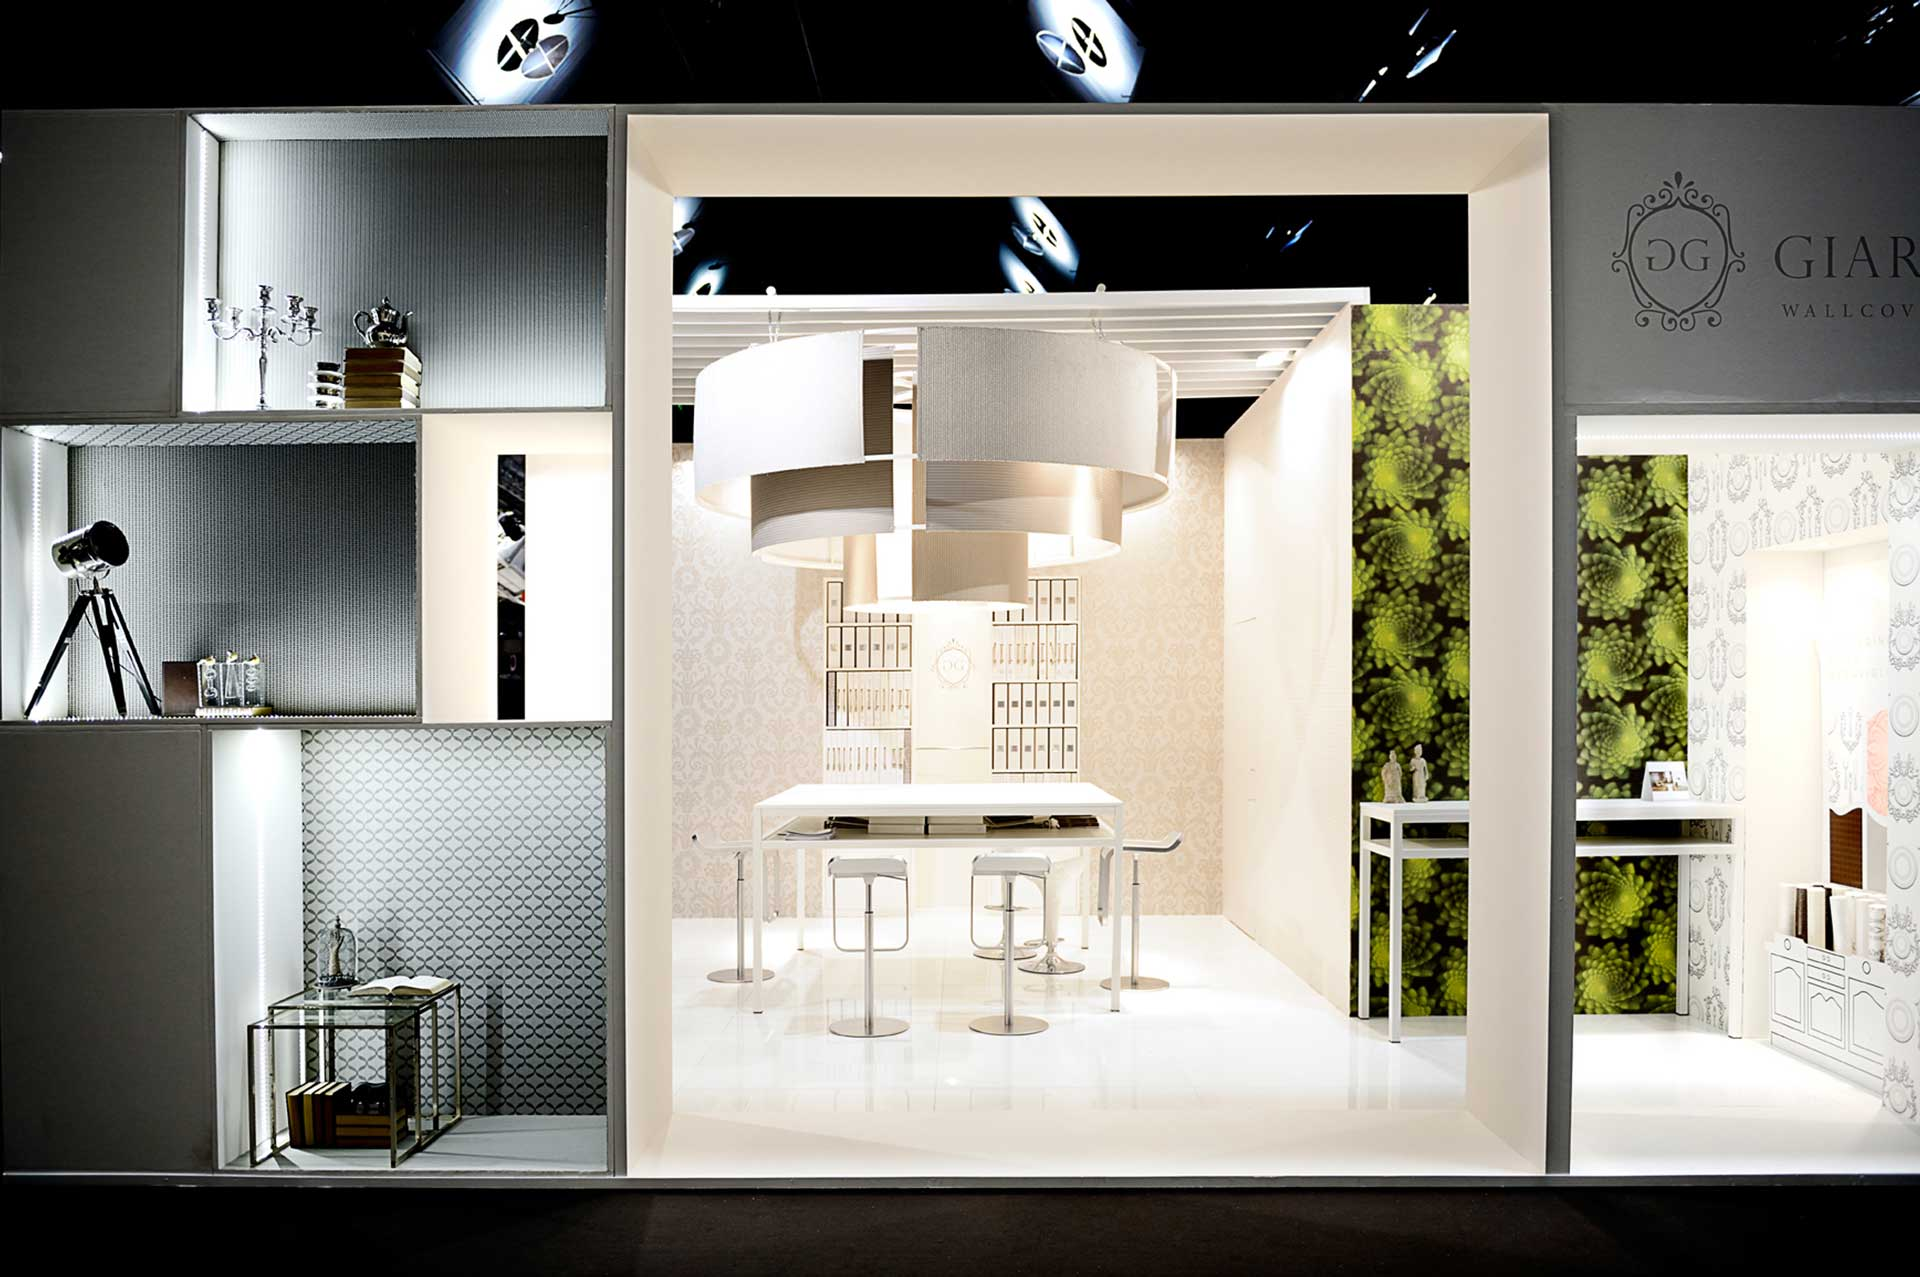 Giardini Maison Objet 2012 exhibition interior design 08